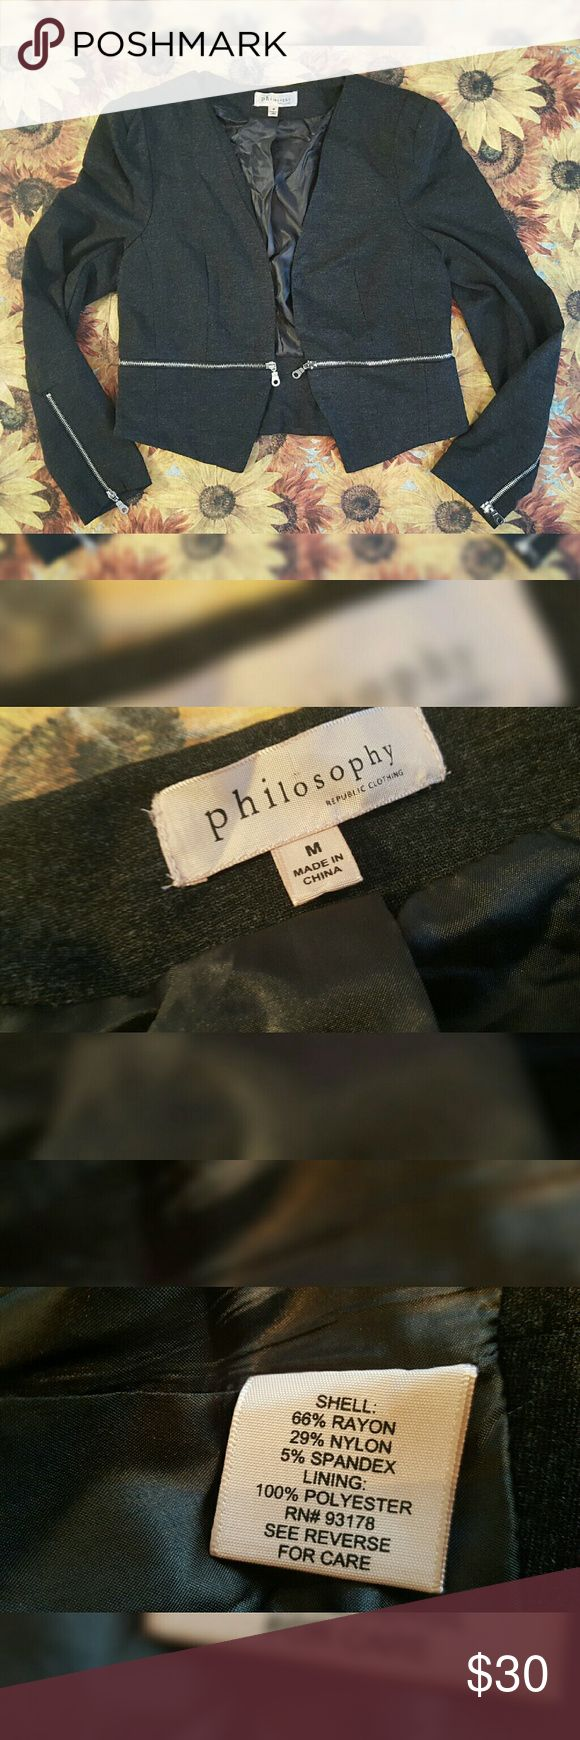 Philosophy Cropped Blazer Worn once. Great condition. Stretchy material. Super comfy. Great for dressing up an outfit. Philosophy Jackets & Coats Blazers